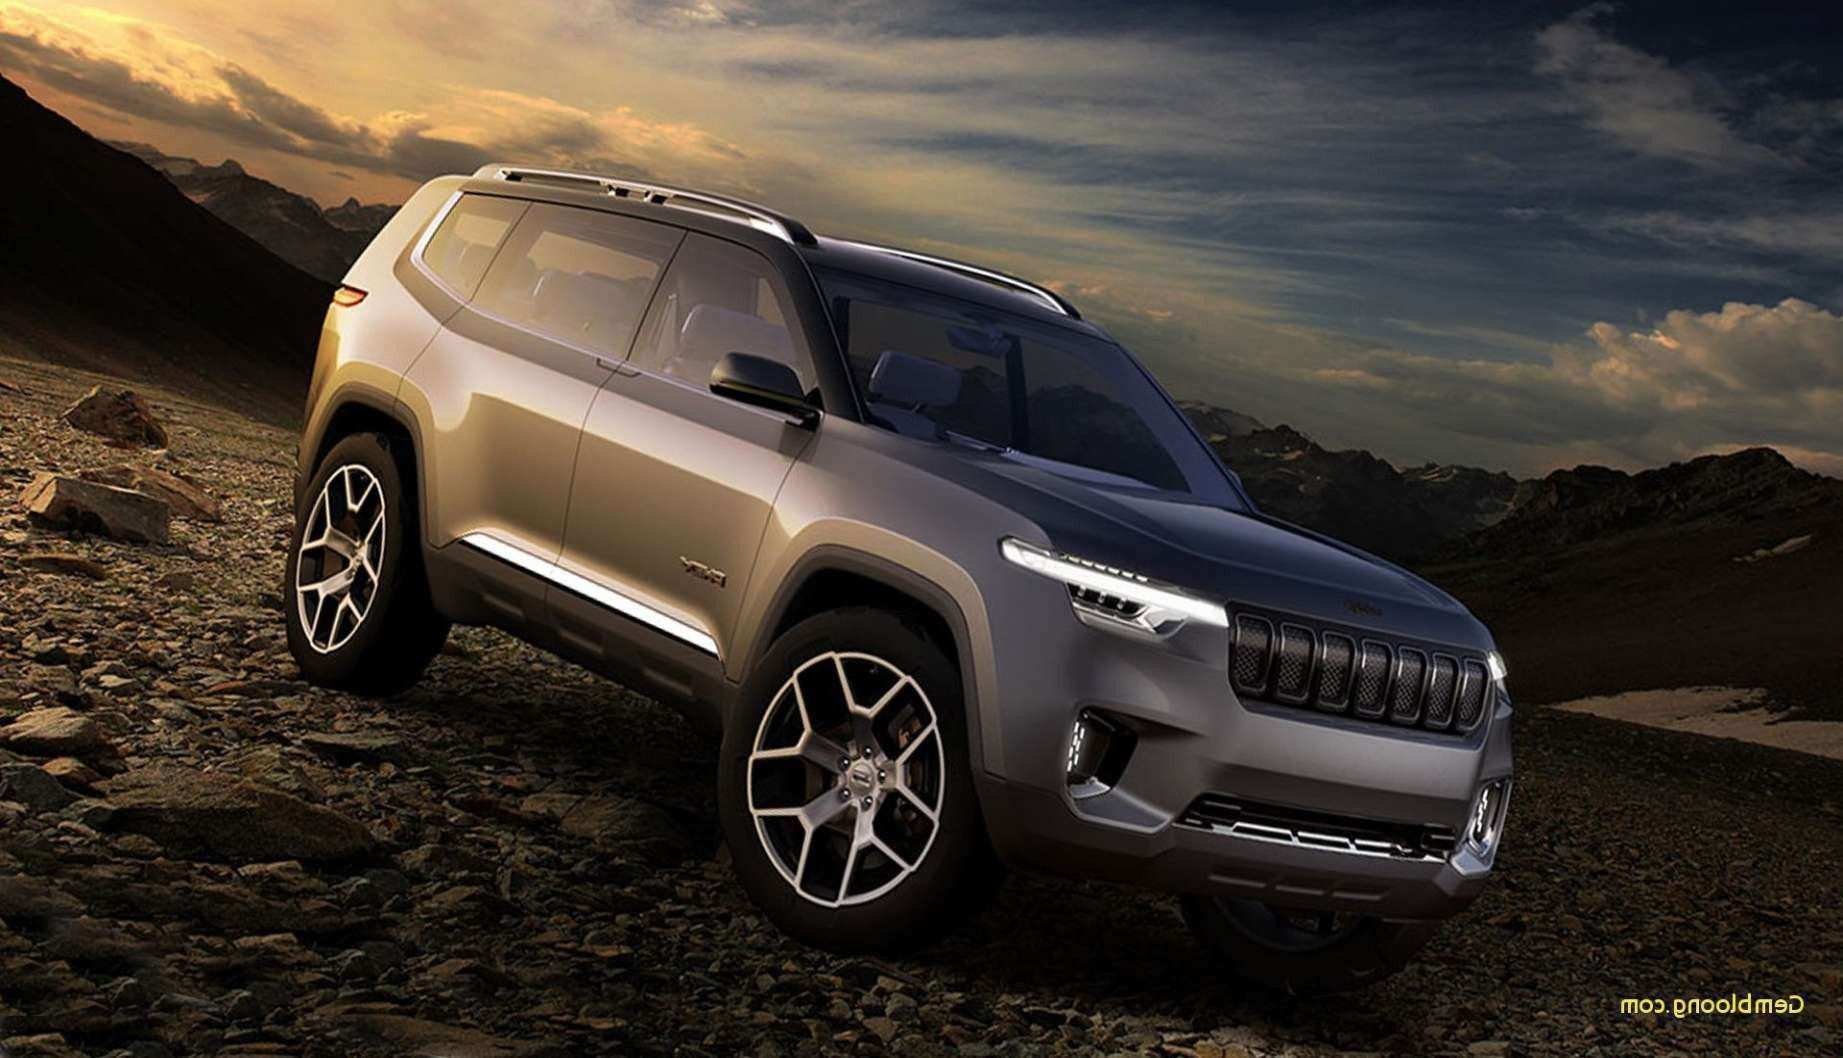 95 Best Review 2020 Jeep Grand Cherokee Spy Exteriors New Concept for 2020 Jeep Grand Cherokee Spy Exteriors